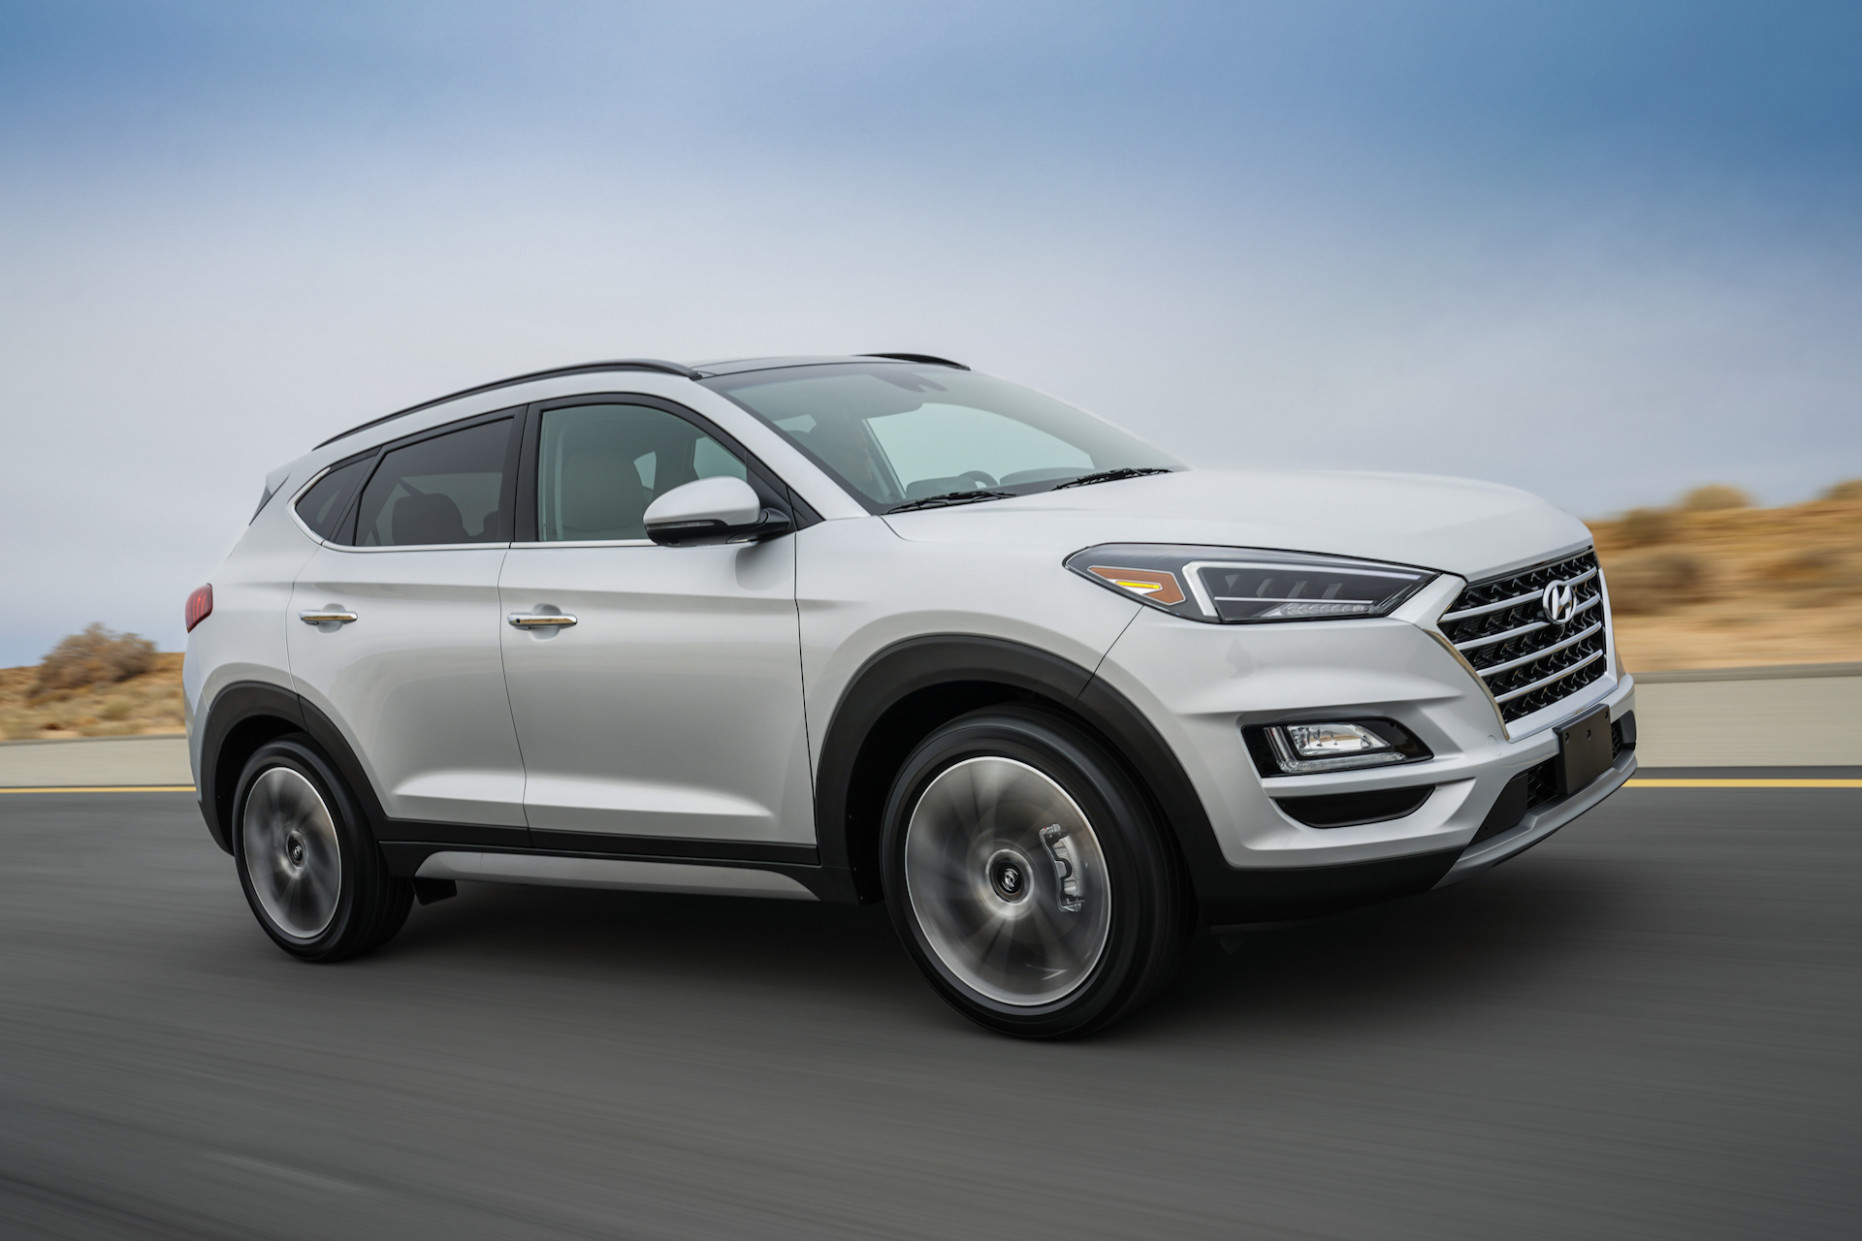 8 Hyundai Tucson Review, Ratings, Specs, Prices, and Photos ...